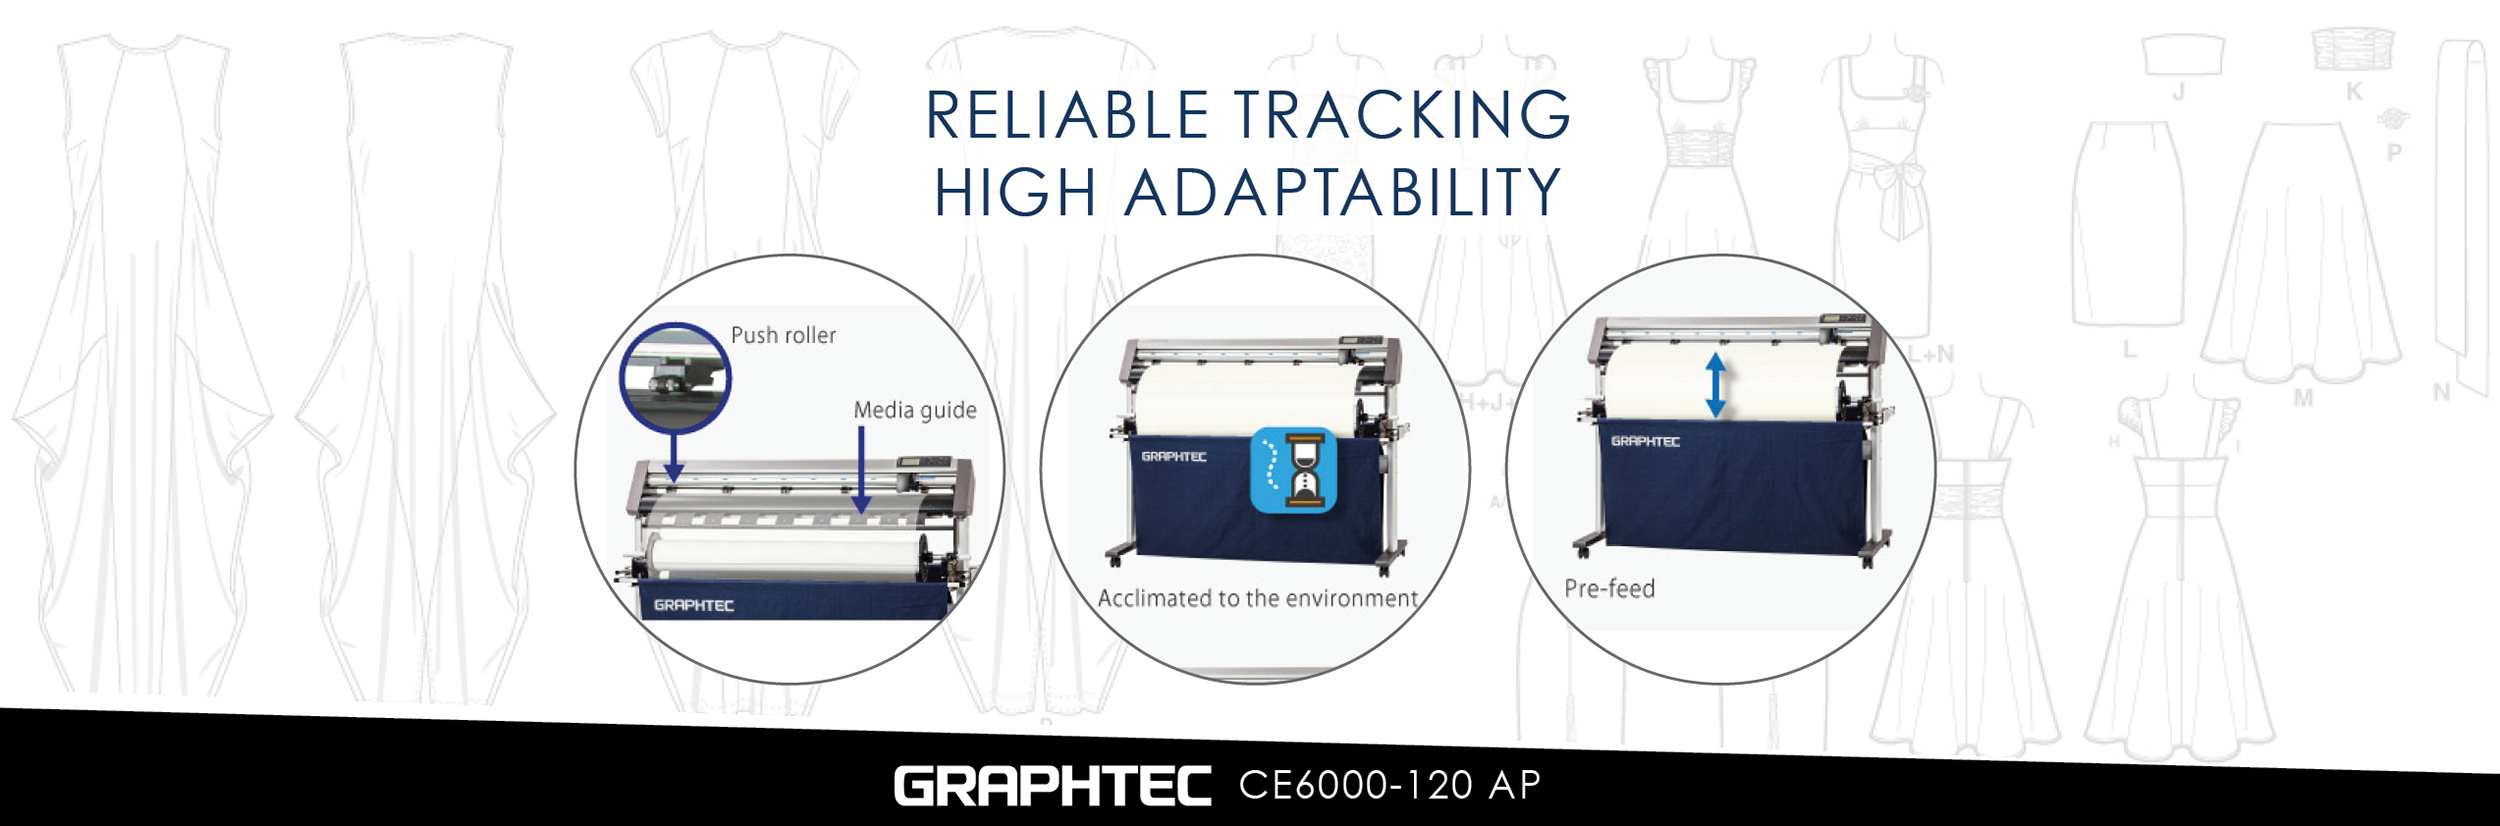 Vinyl+Cutter+Roll-Feed-Cutter-Machine+Graphtec+CE6000-AP-Liable-Tracking-Hight-Adaptibility.jpg